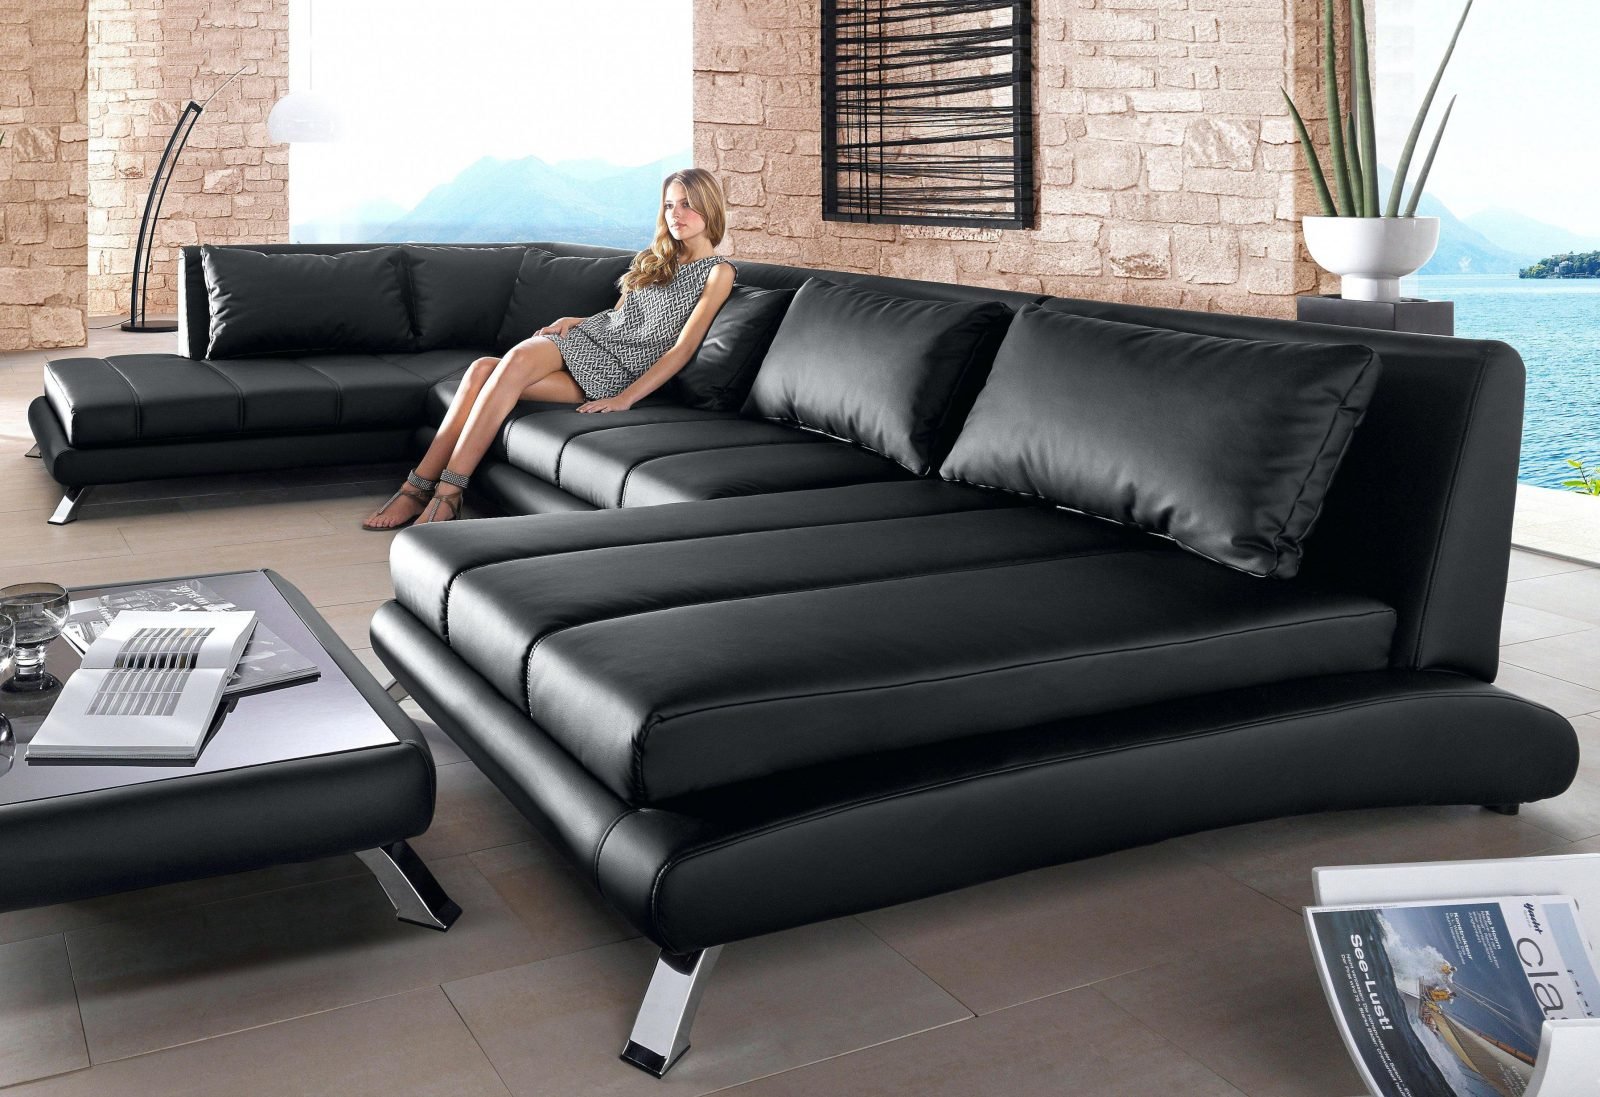 Ecksofa Sit And More Kleine Ecksofa Gebraucht Chesterfield Poco